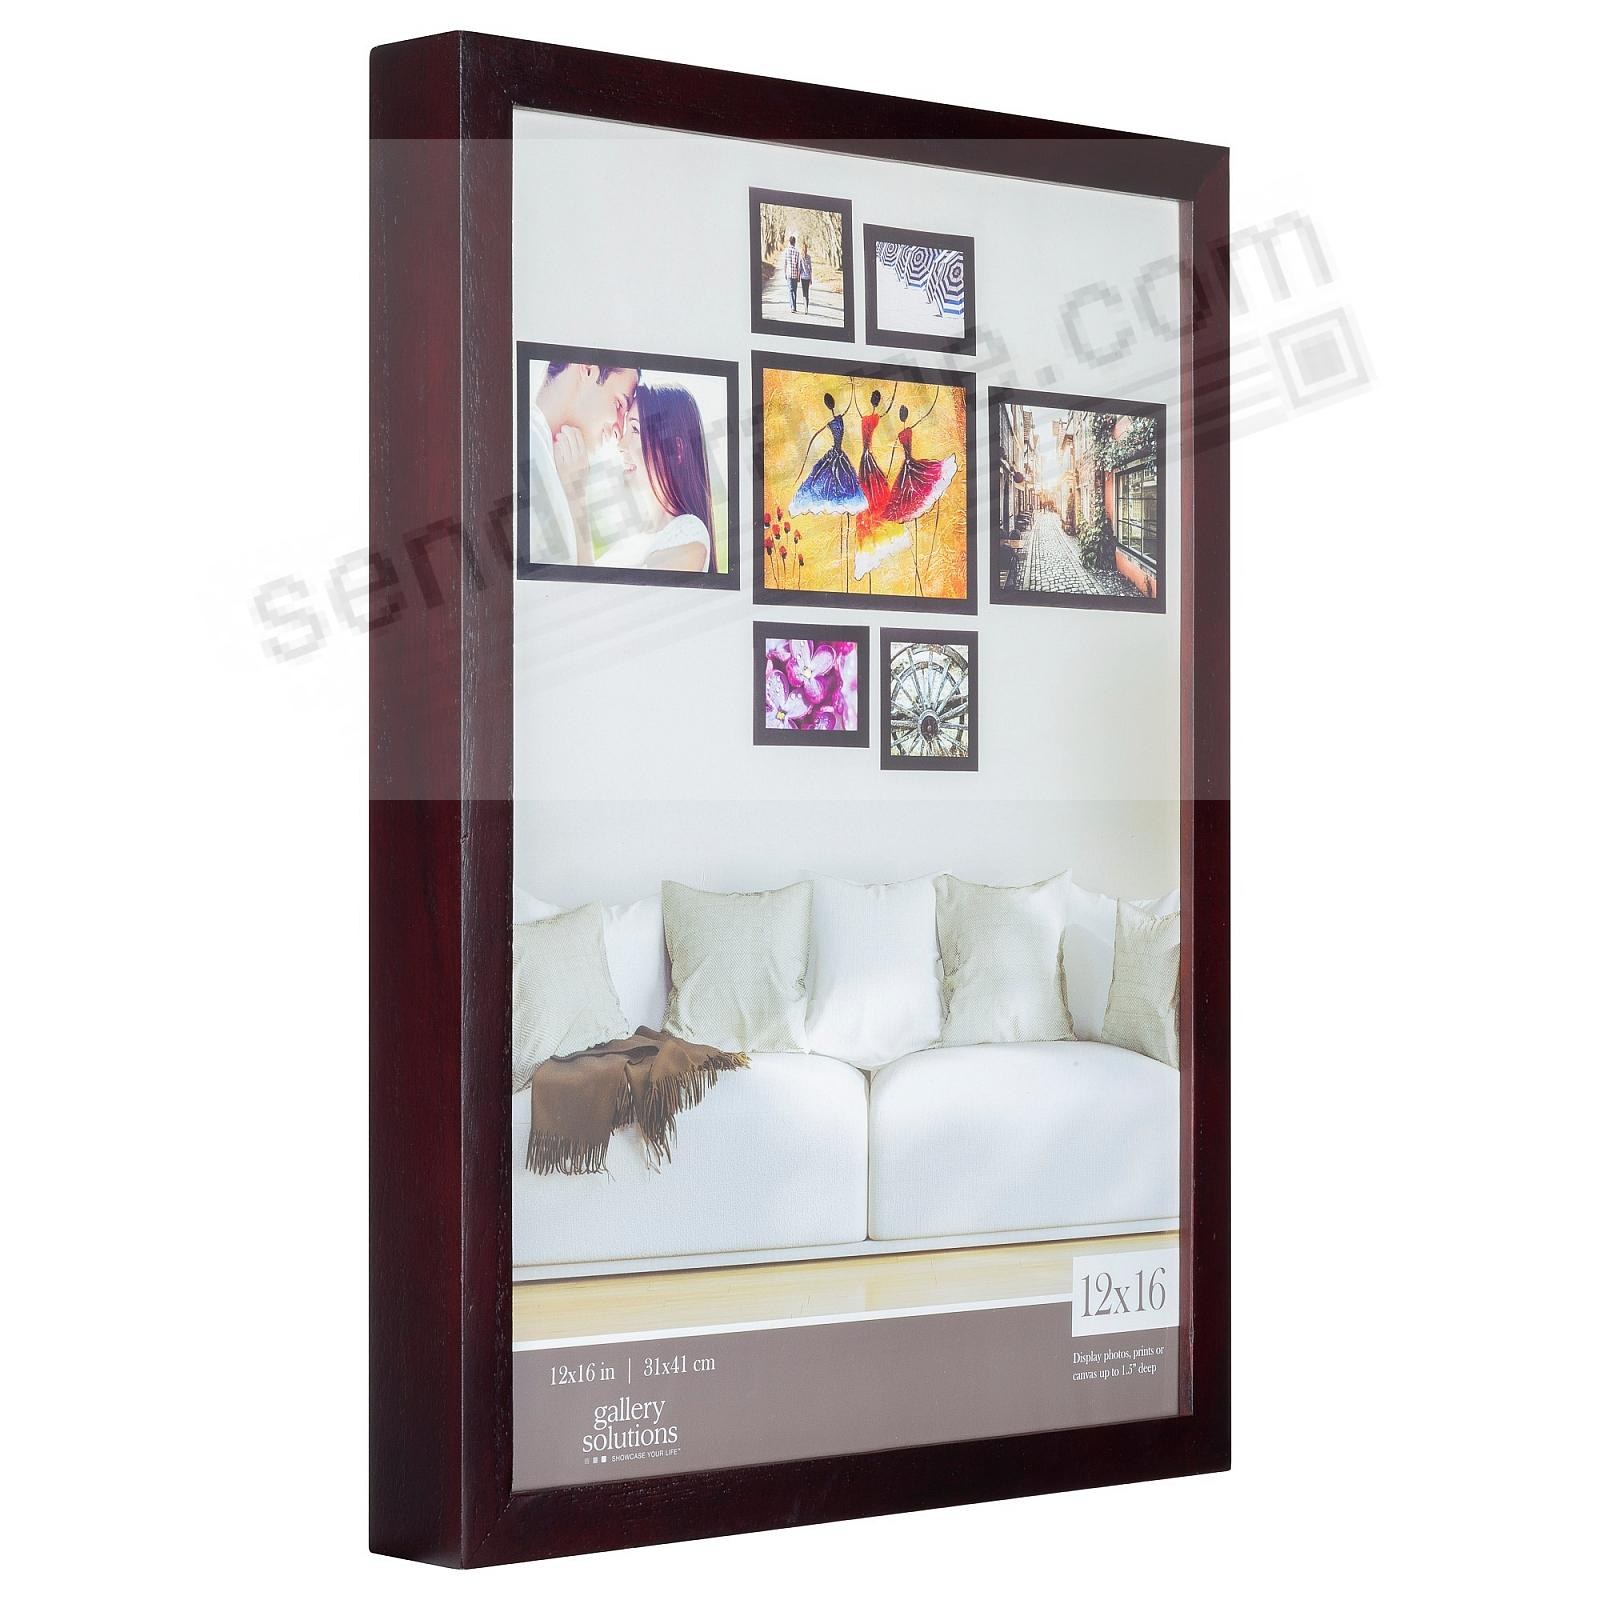 Walnut GALLERY 12x16 frame by Gallery Solutions®